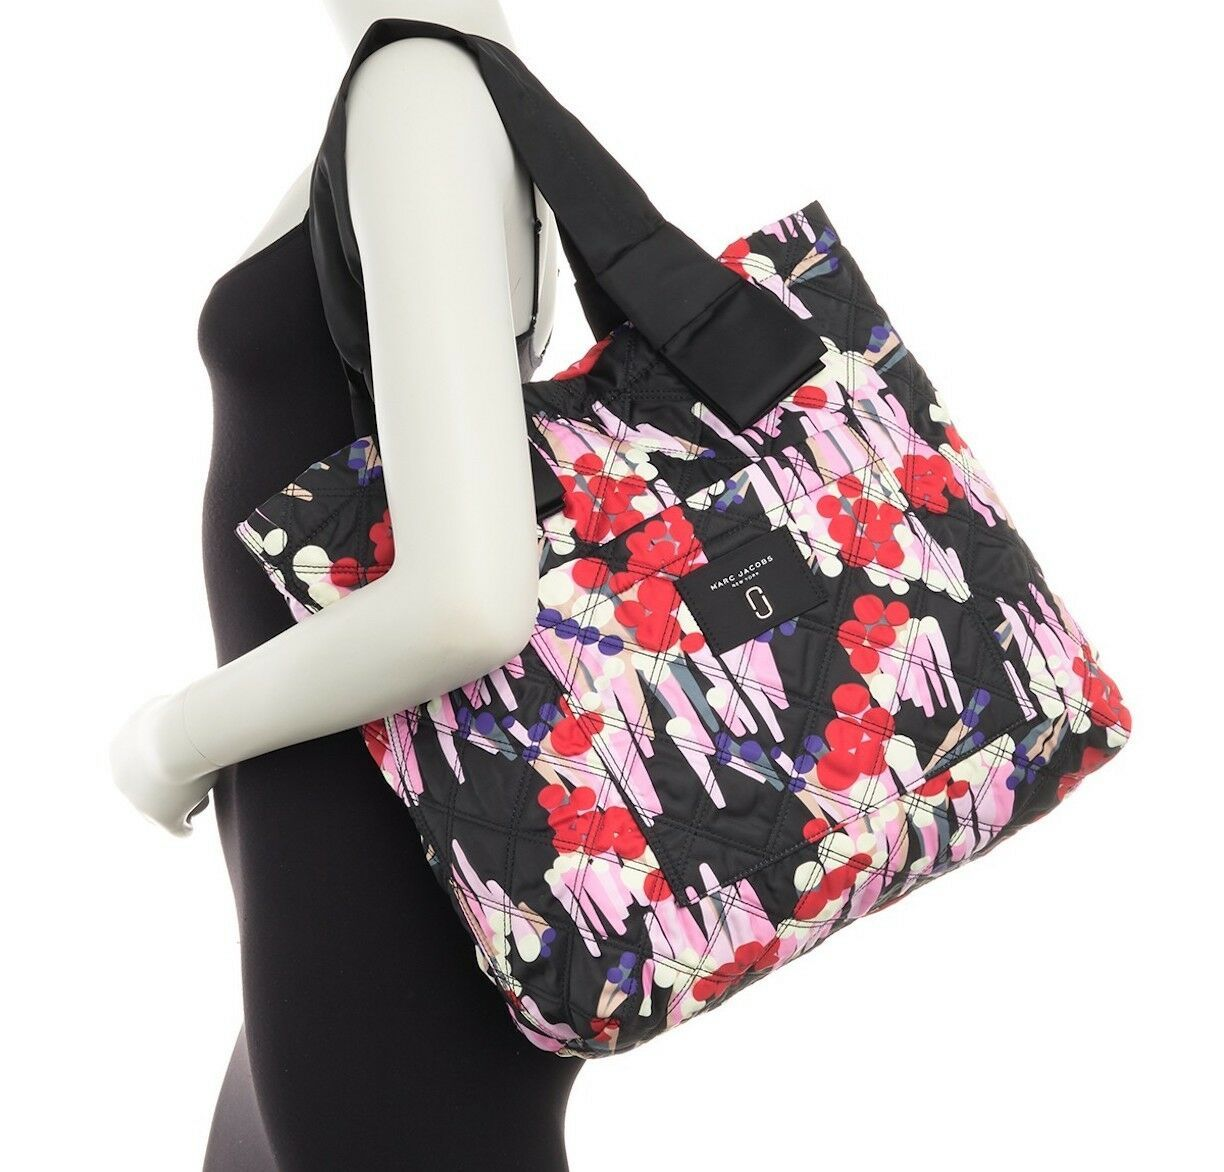 Primary image for Marc Jacobs Bag Quilted Floral Tote NEW